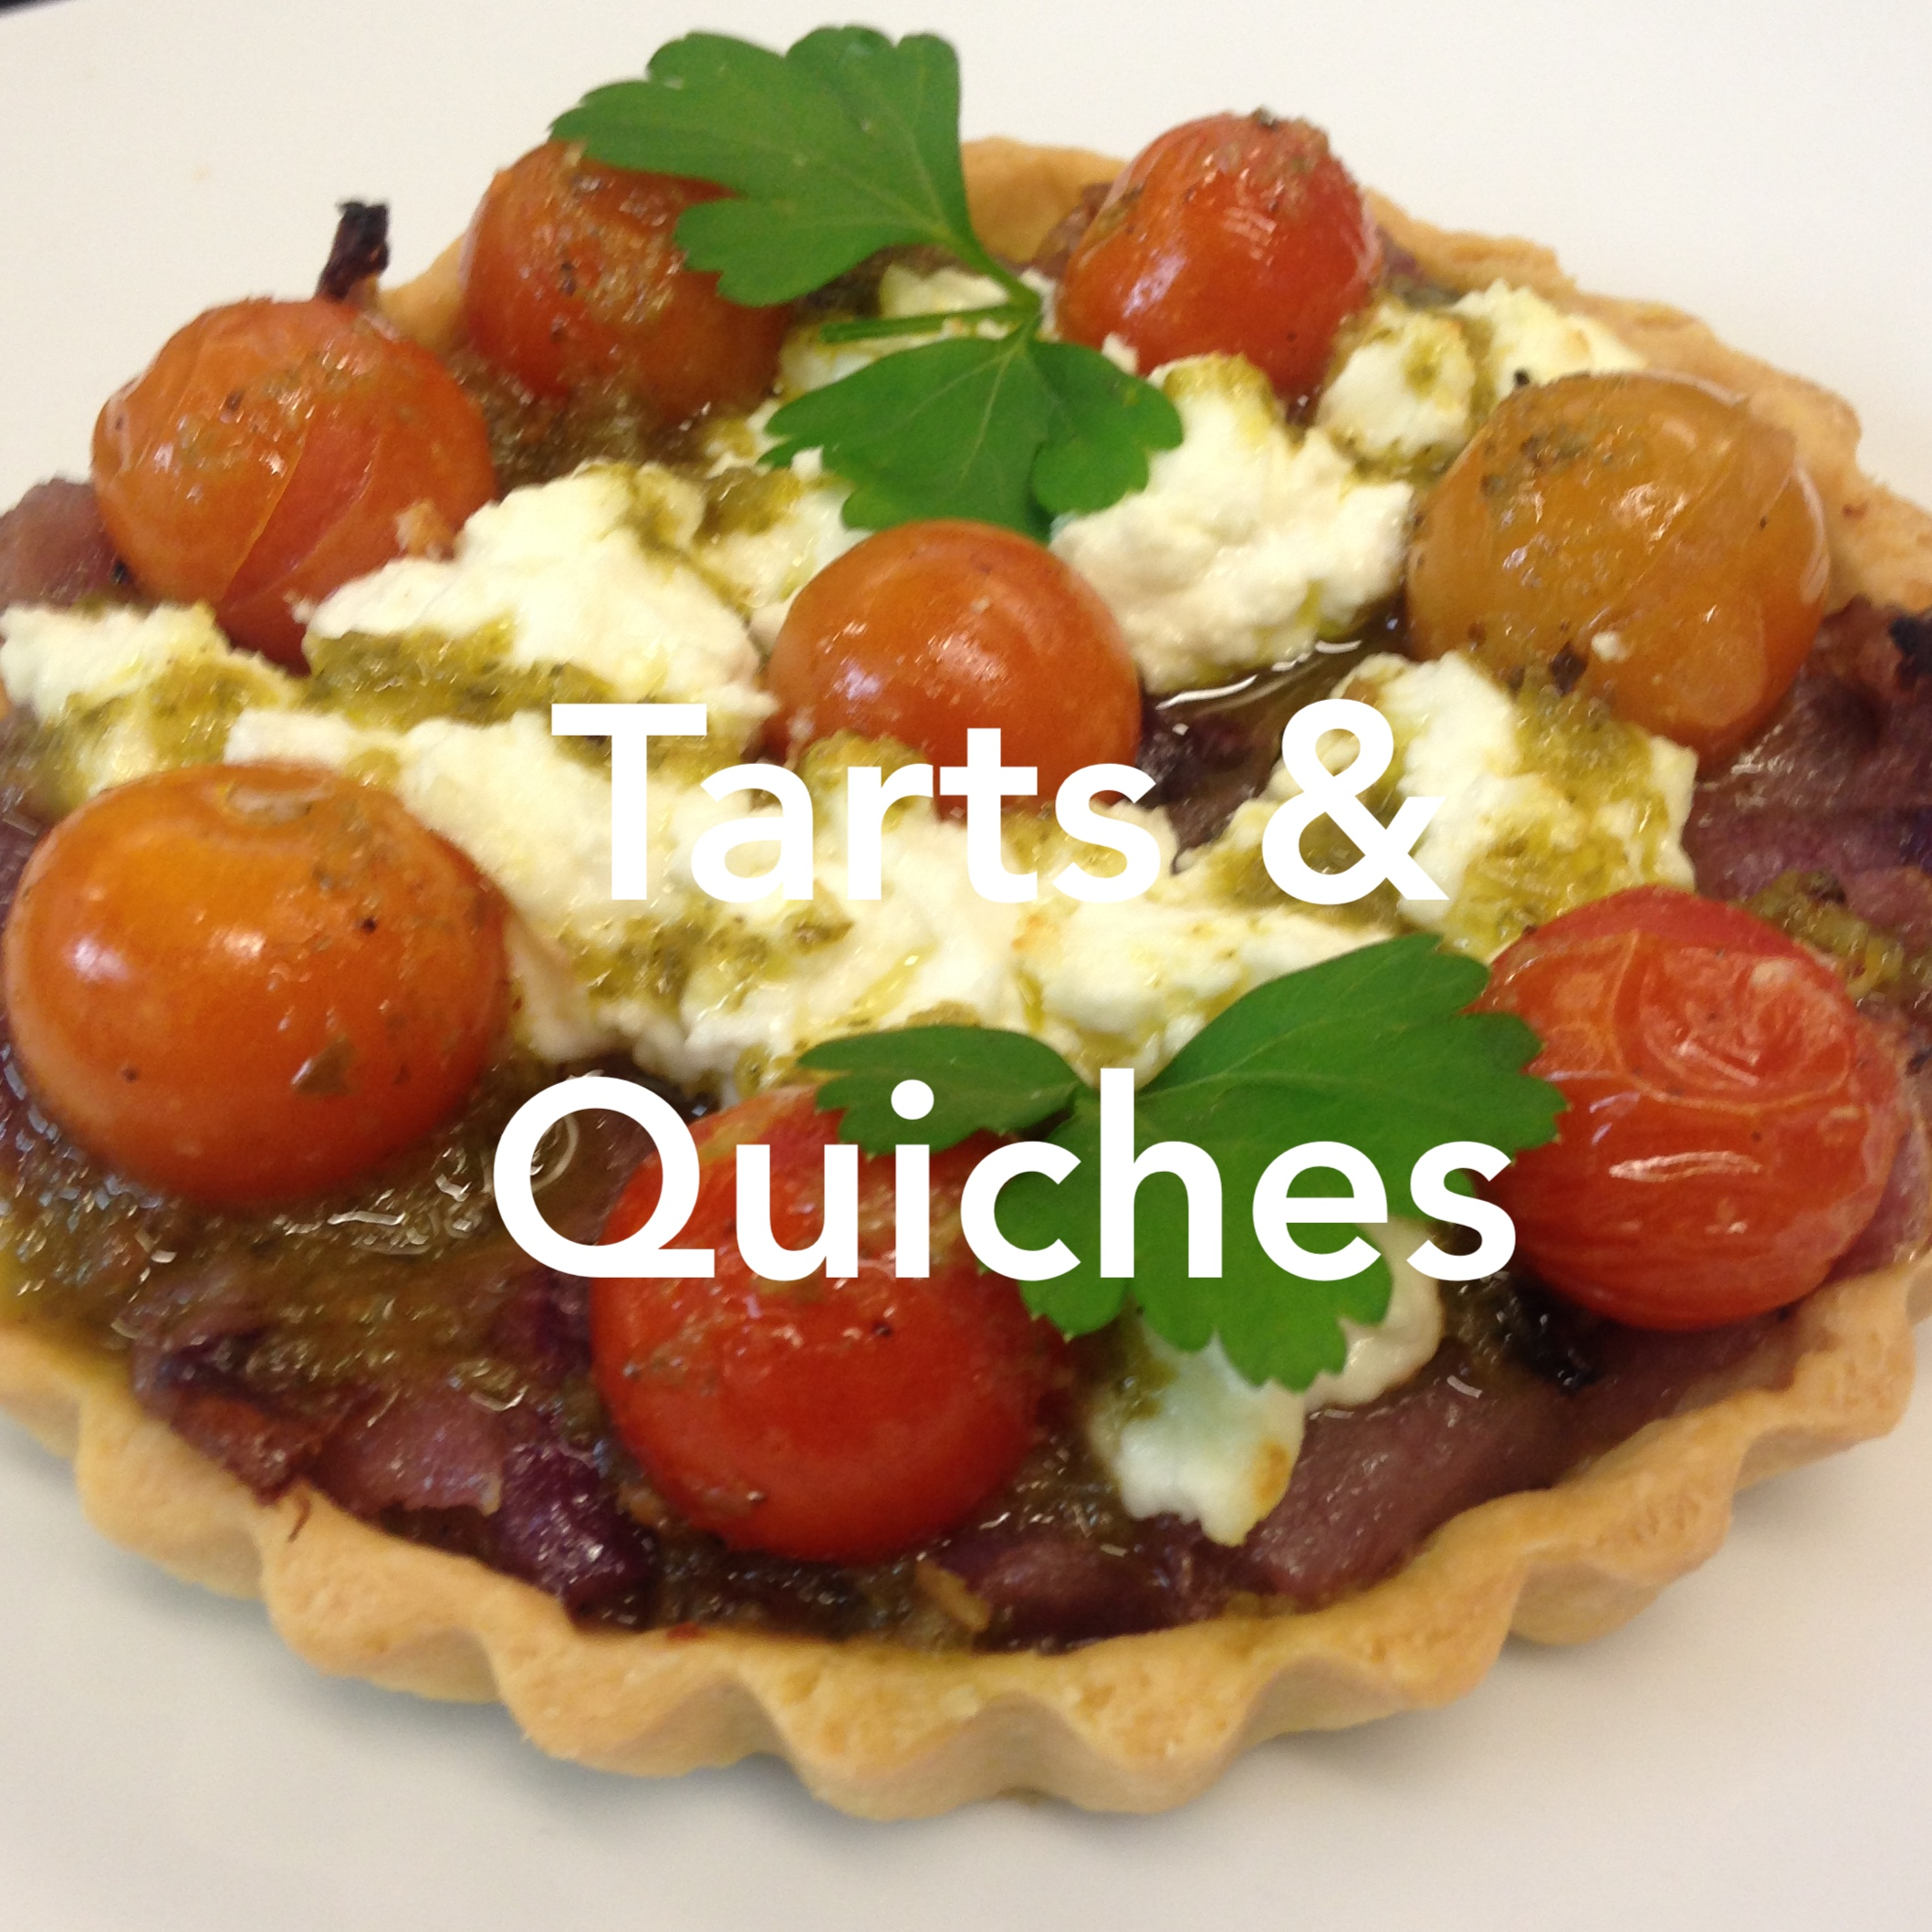 tarts & quiches.jpg